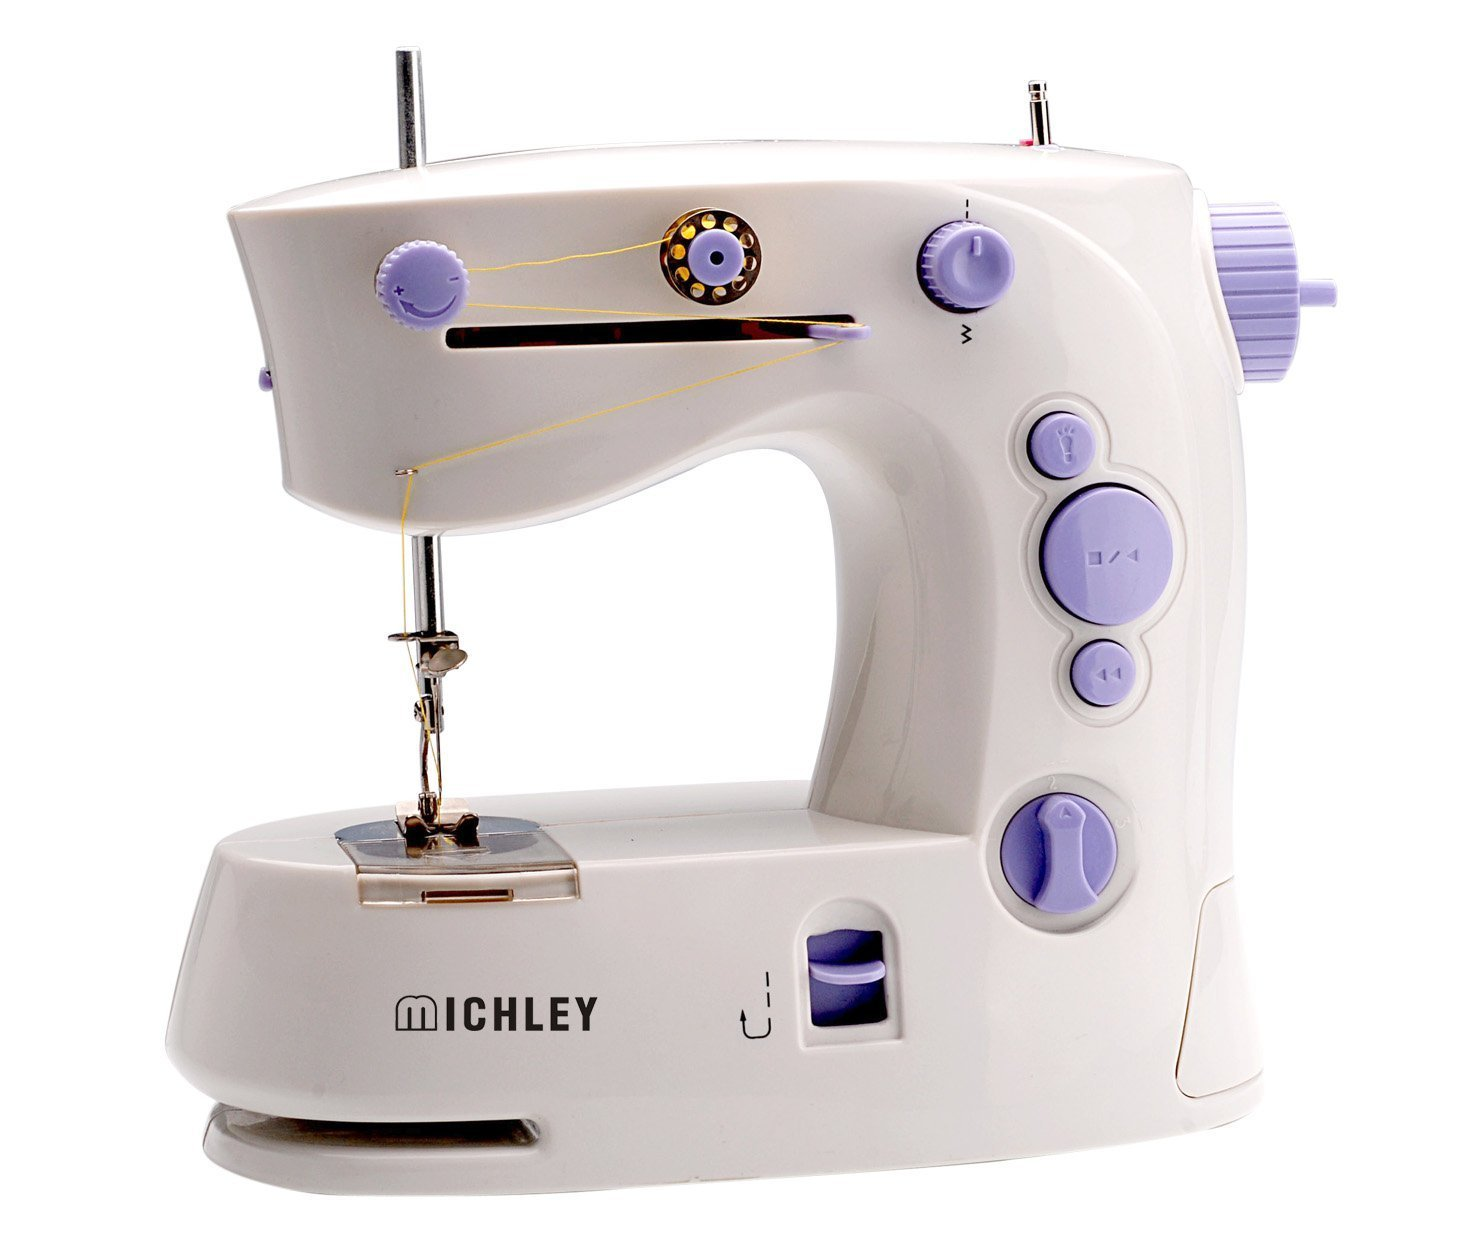 michley sewing machine website